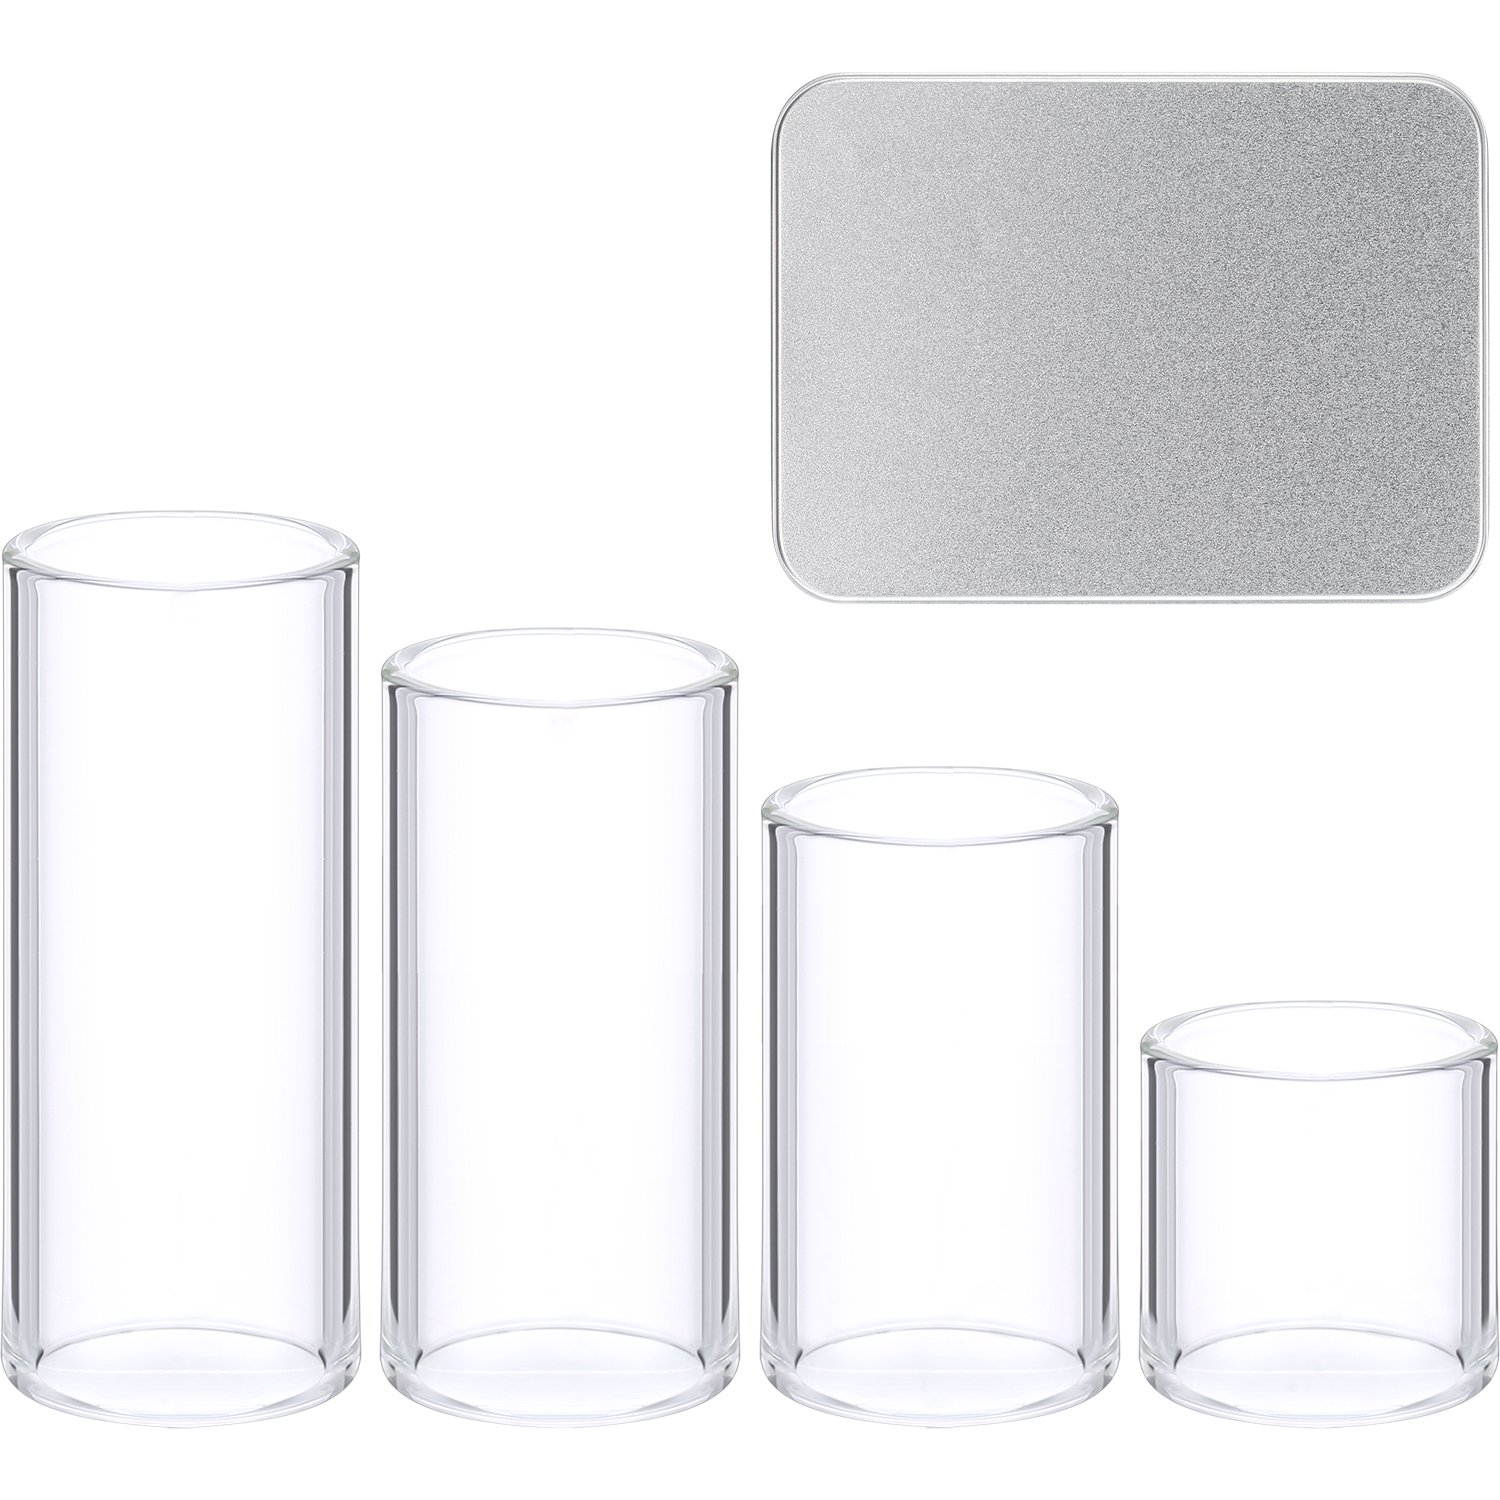 4 Pieces Glass Slide Set with Metal Box for Guitar, Bass Patelai